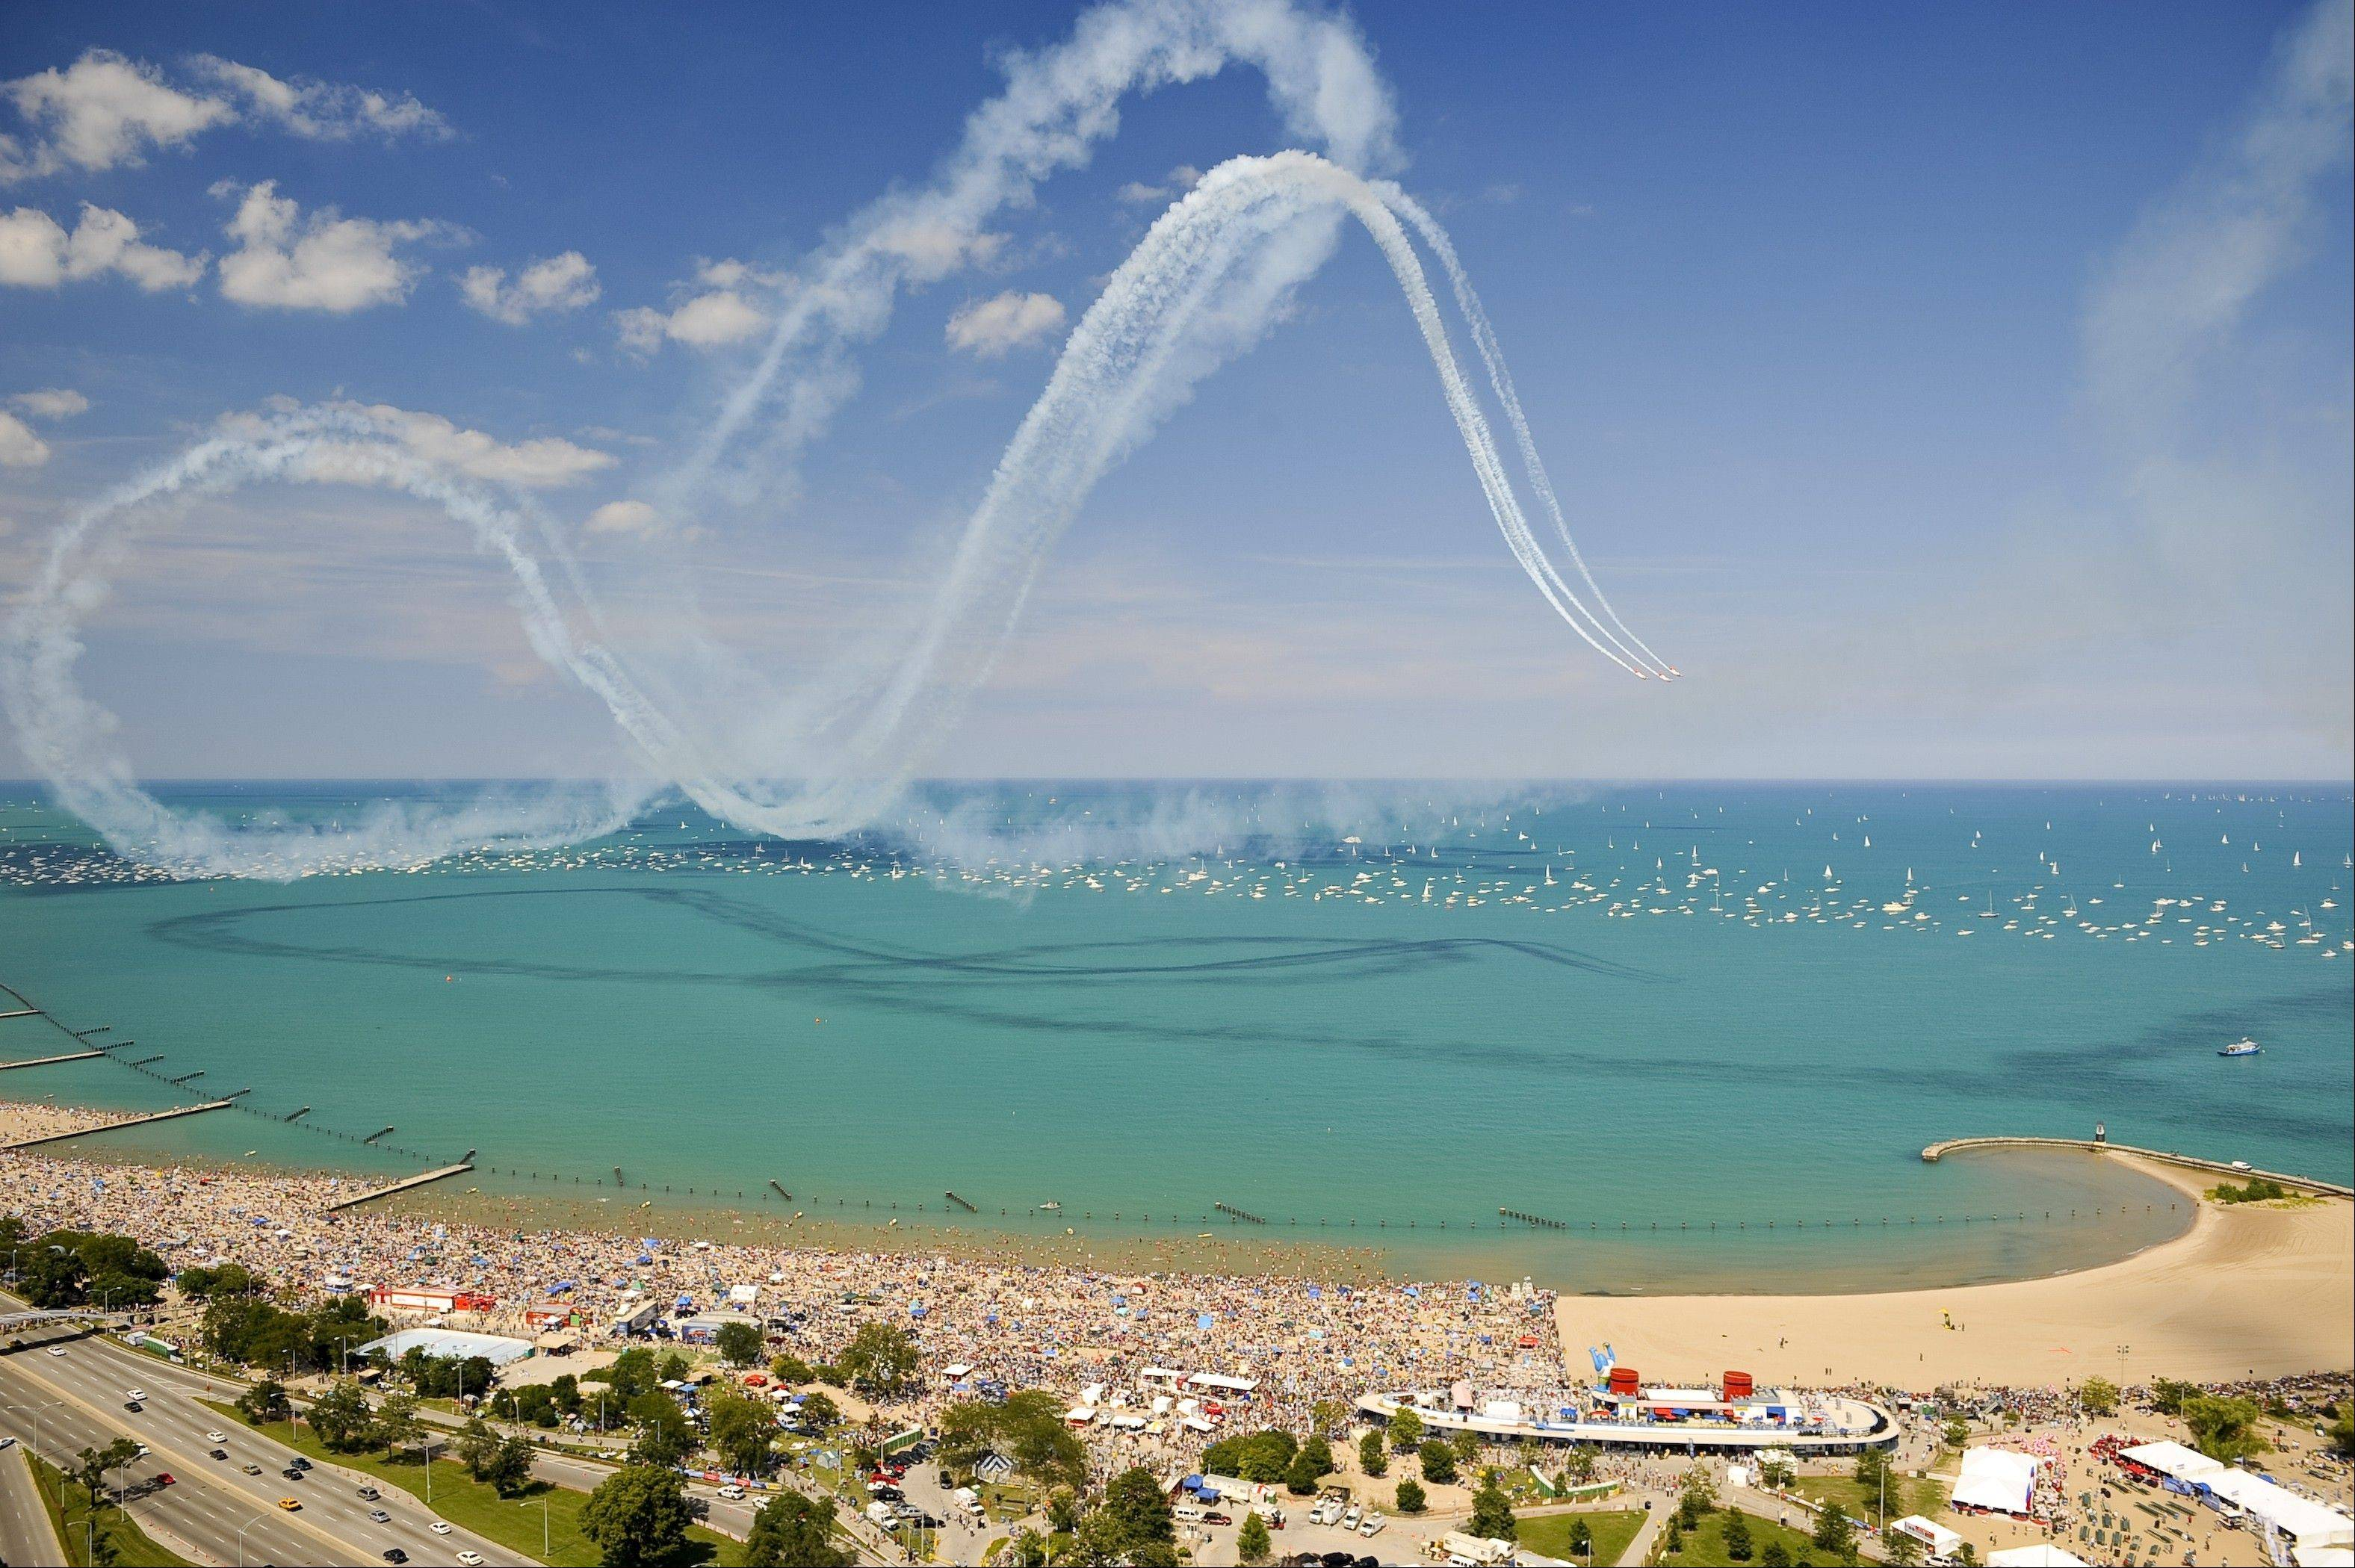 Stripes of smoke fill the skies over North Avenue Beach for the Chicago Air & Water Show. The show draws up to 2 million people to the lake -- and local rooftops -- each summer.